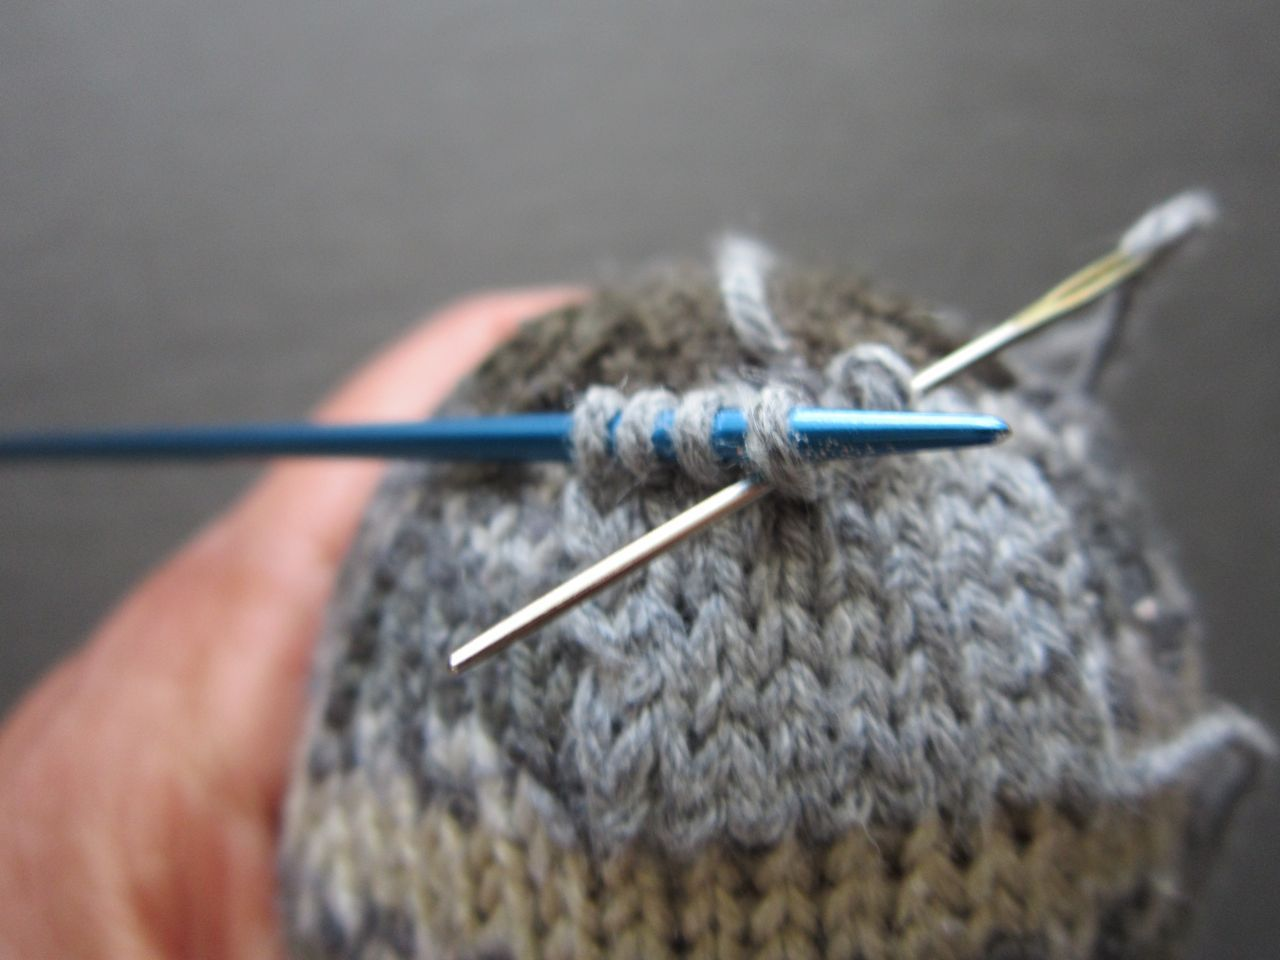 Repairing a handknit sock with a knitinplace patch